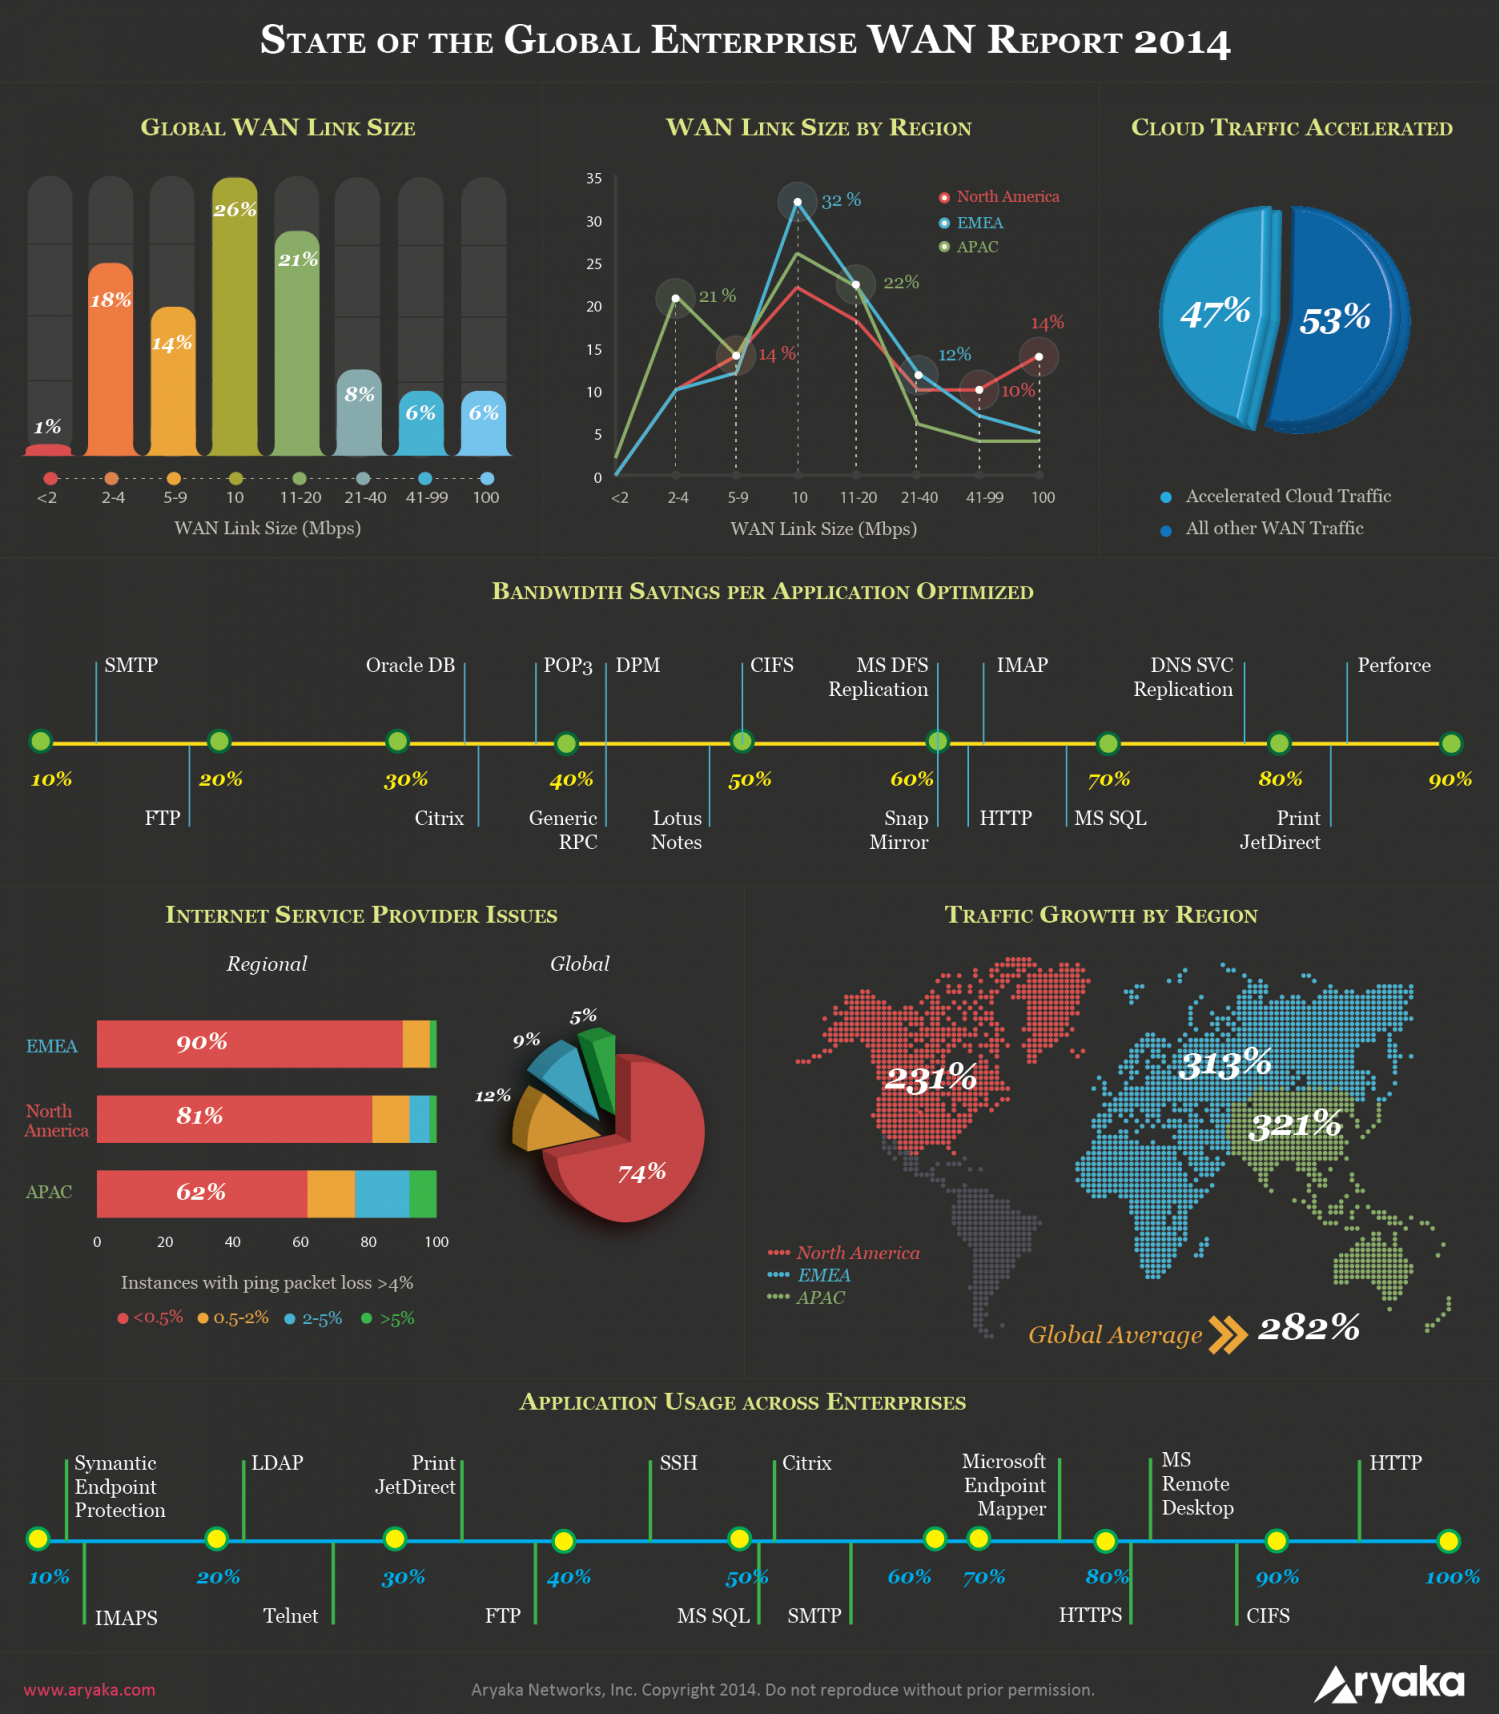 State of The Global Enterprise WAN Report 2014 Infographic